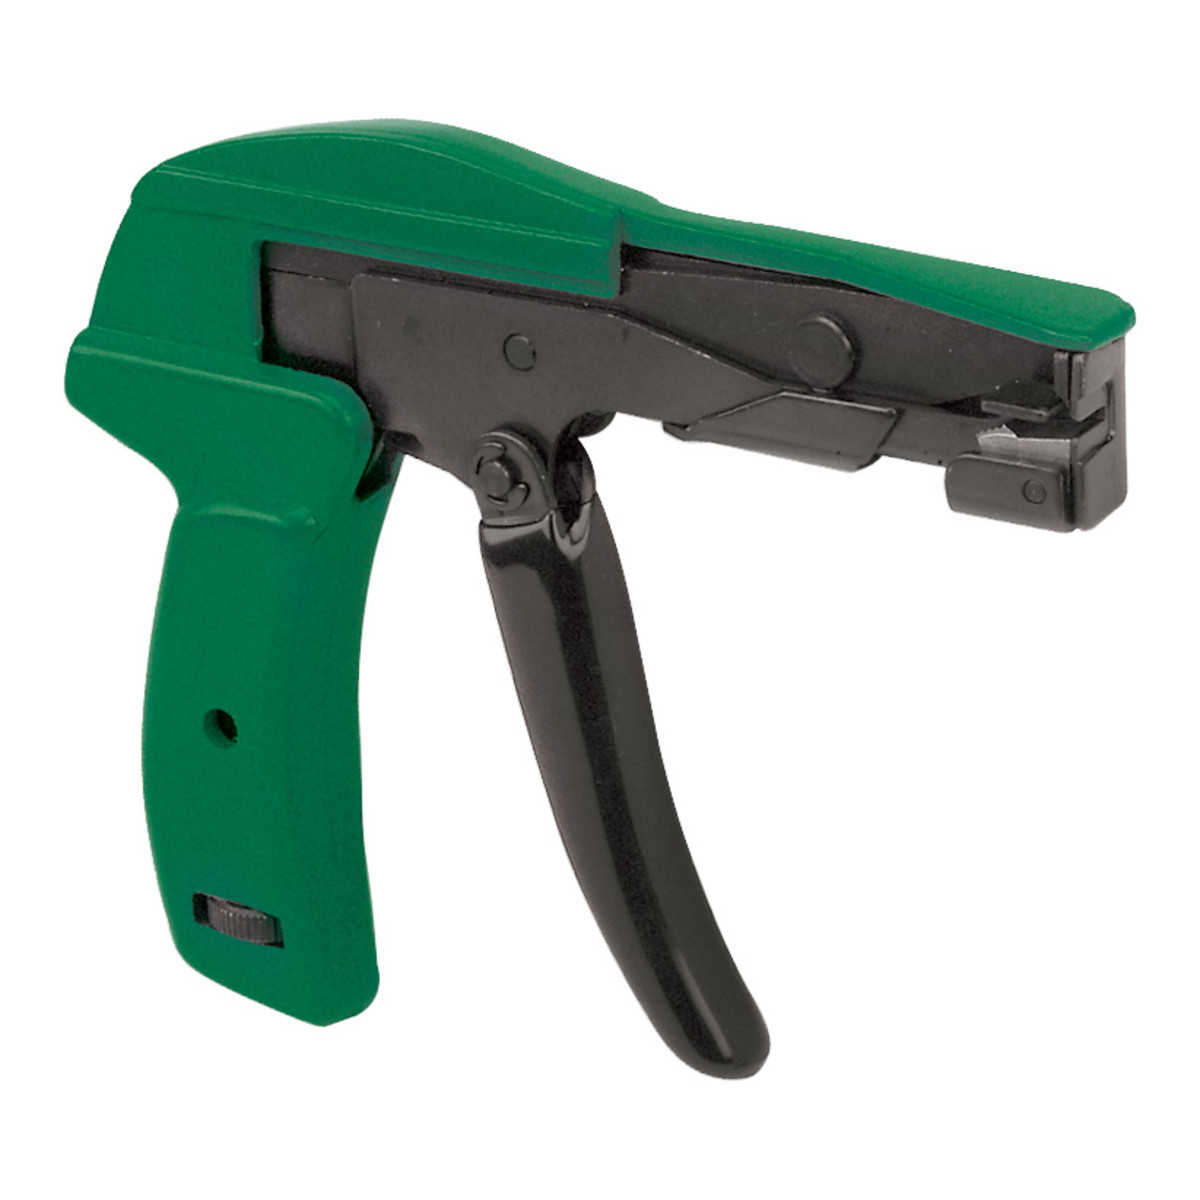 Greenlee 45306 Kwik Cycle® Standard Cable Tie Installation Tool